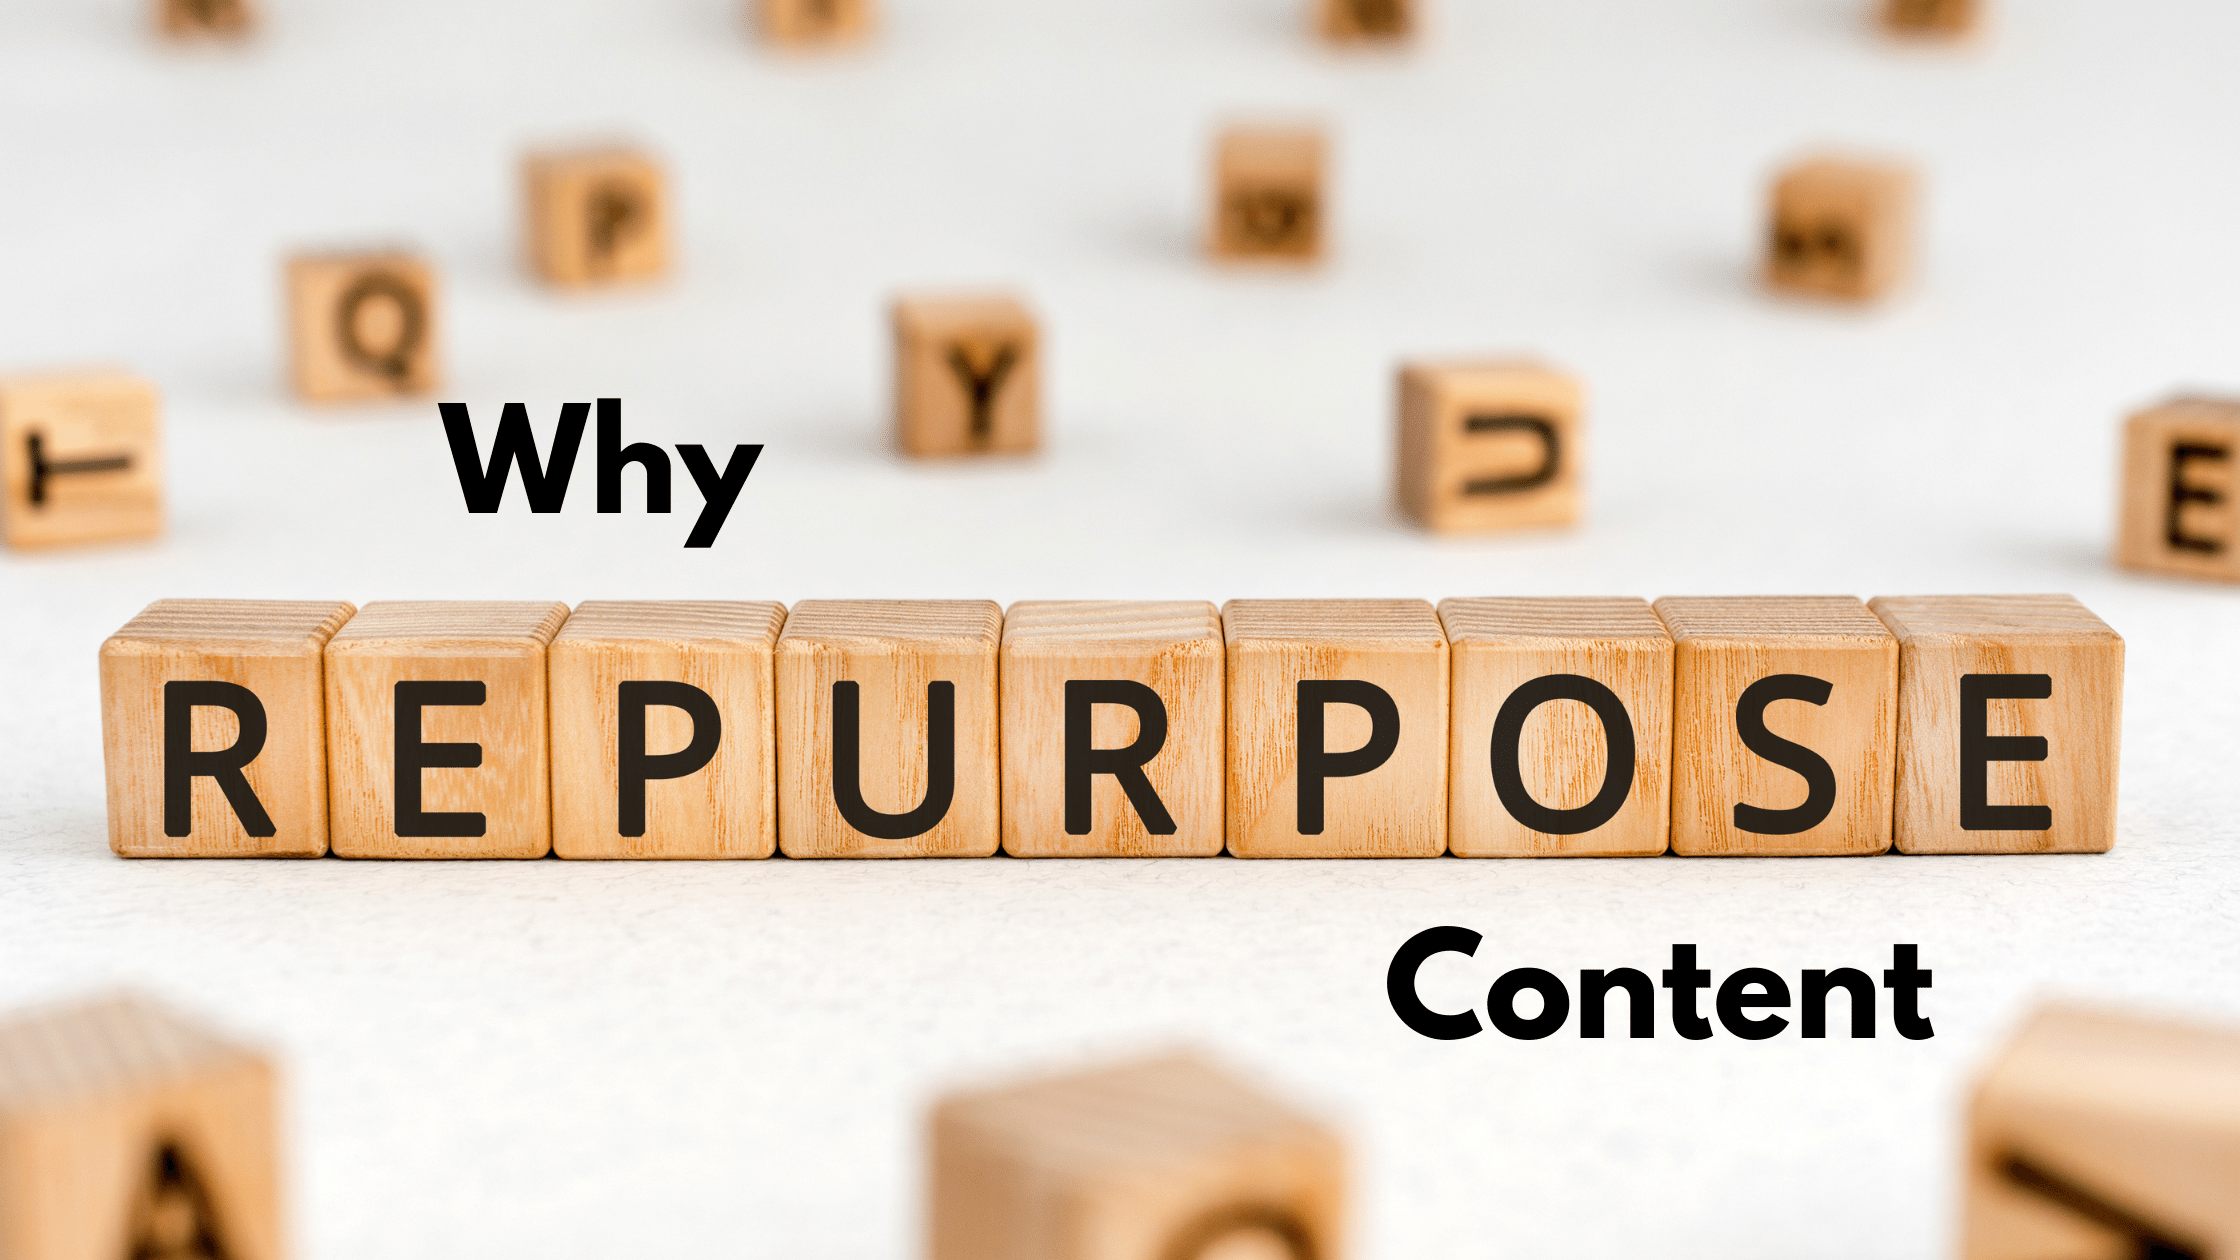 Why repupose content